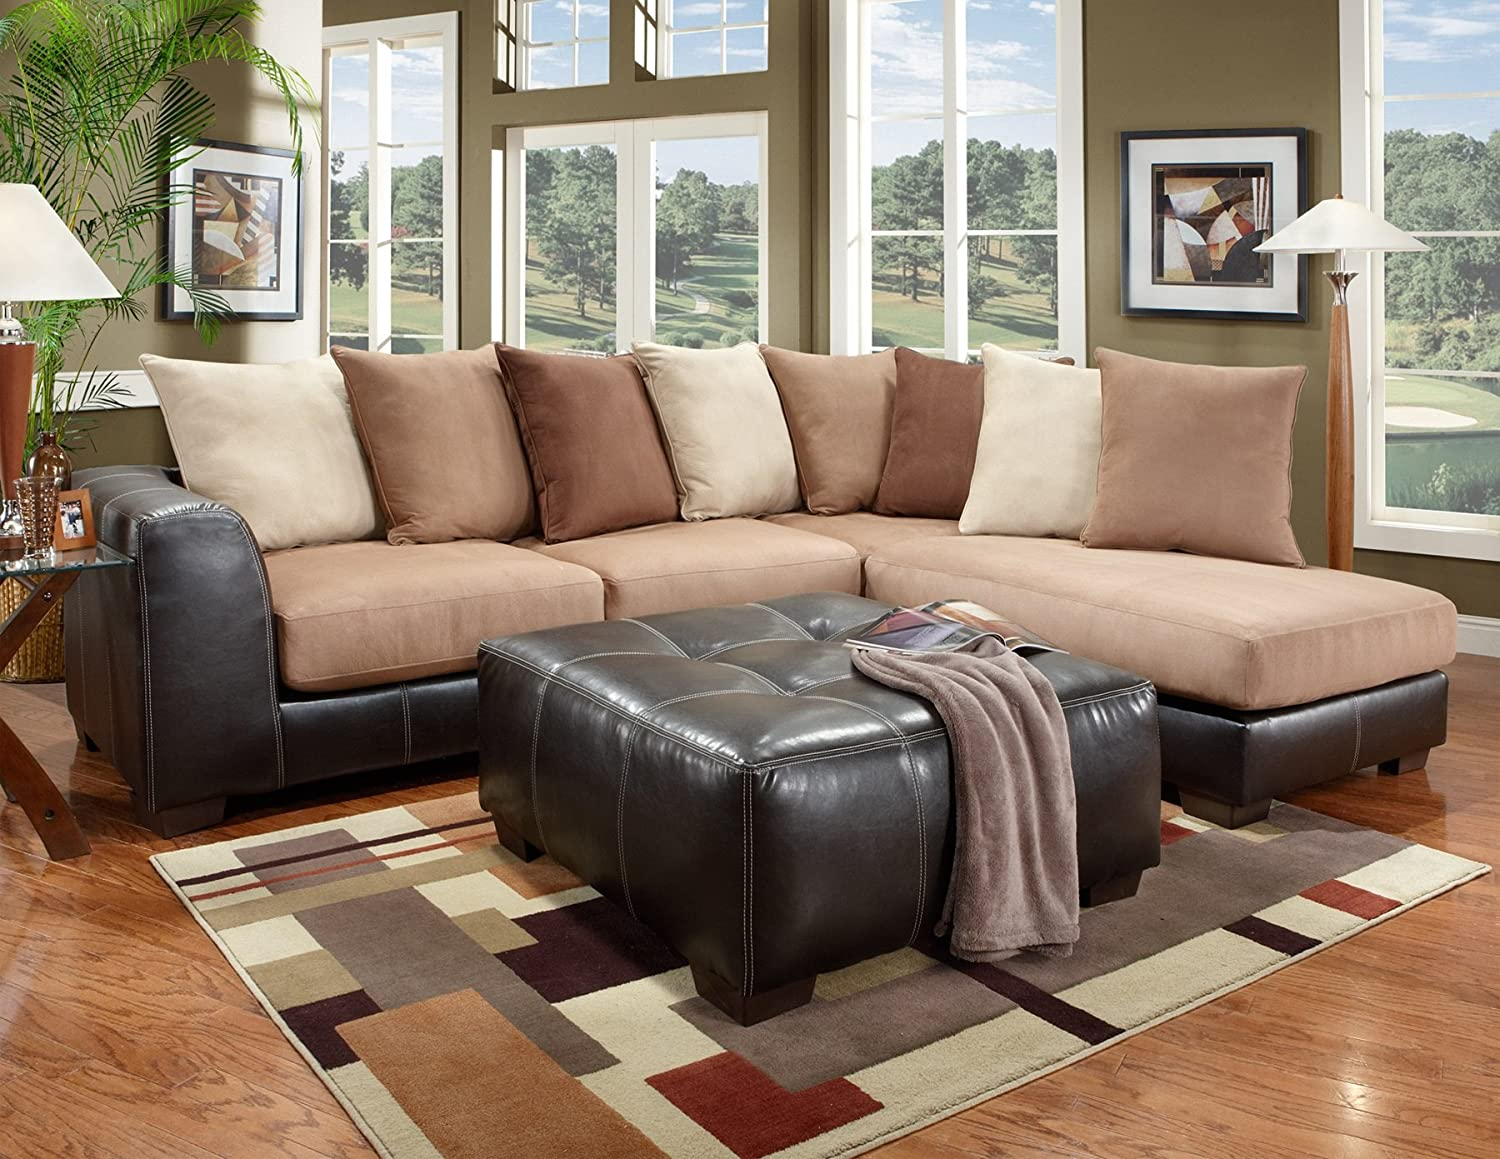 sectionala heads sofa couch marvelous leather silver sectional nailhead covering norwalk nail photo trimsectional furniture tan with design